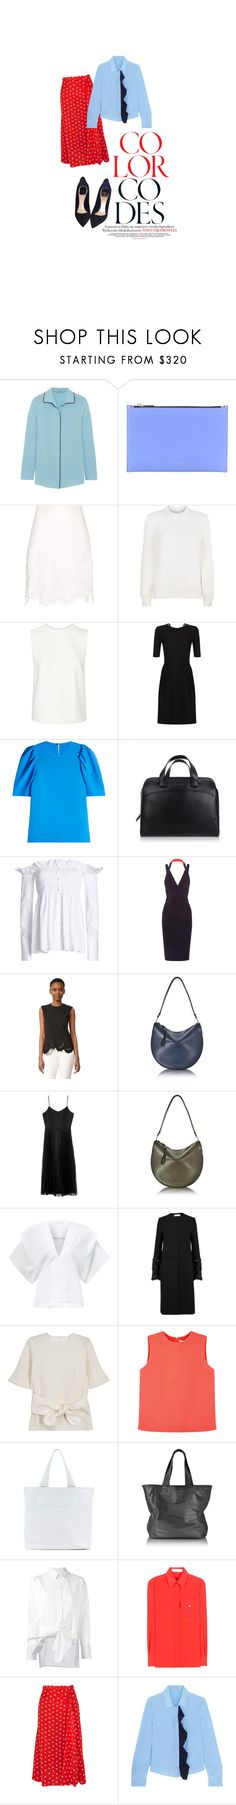 """Color Codes"" by marilu ❤ liked on Polyvore featuring Prada, Victoria Beckham, Victoria, Victoria Beckham, Miu Miu and Christian Dior"